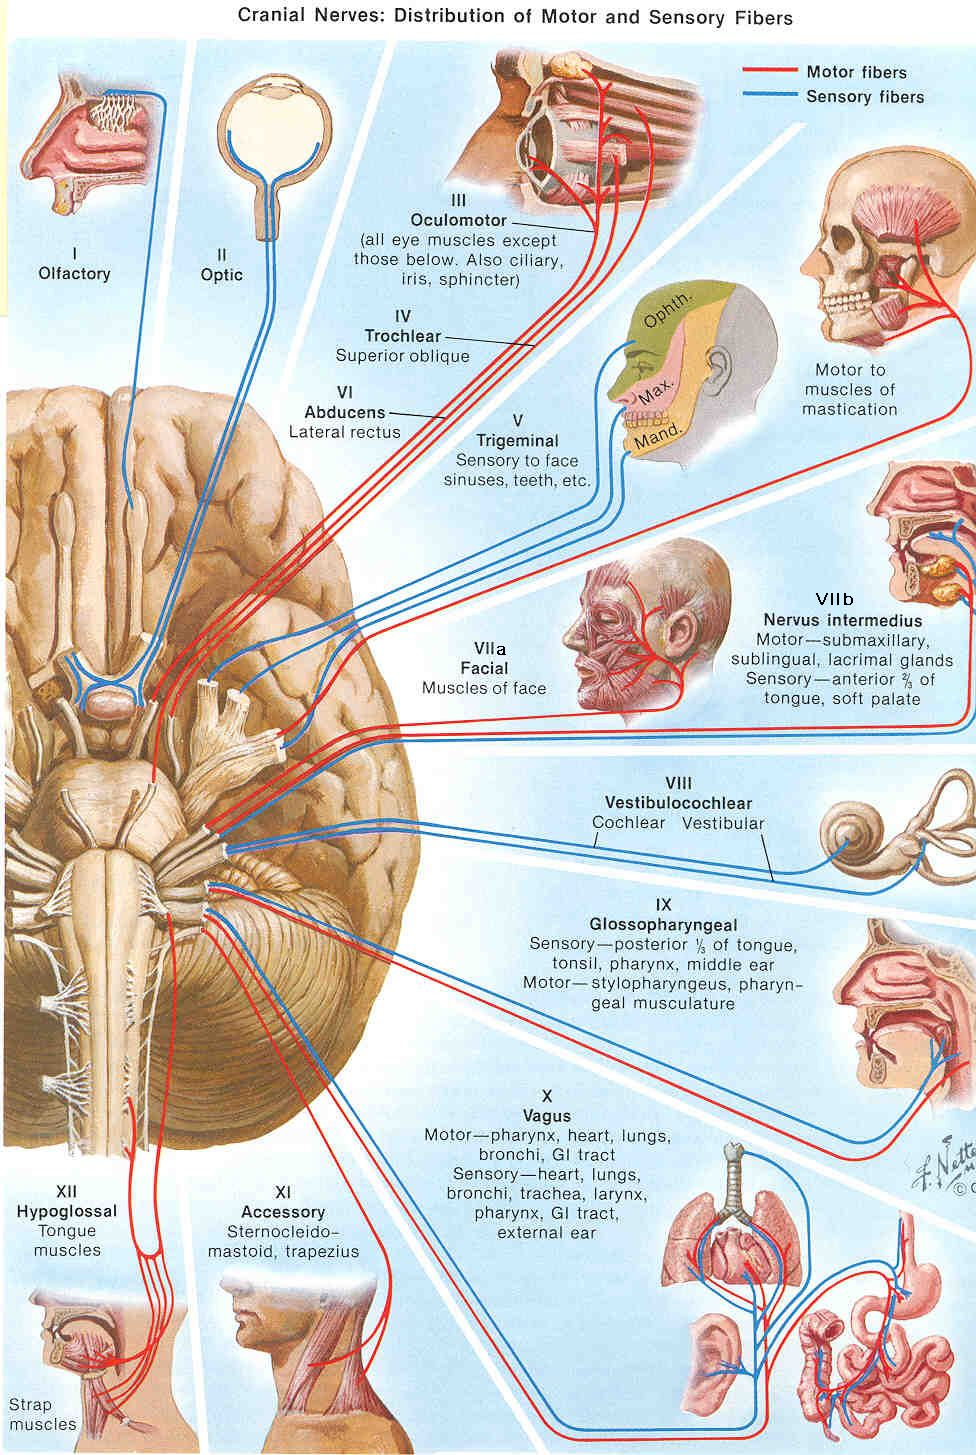 ☤ MD ☞ Cranial nerves. | brain stuff | Pinterest | Anatomy, Brain ...